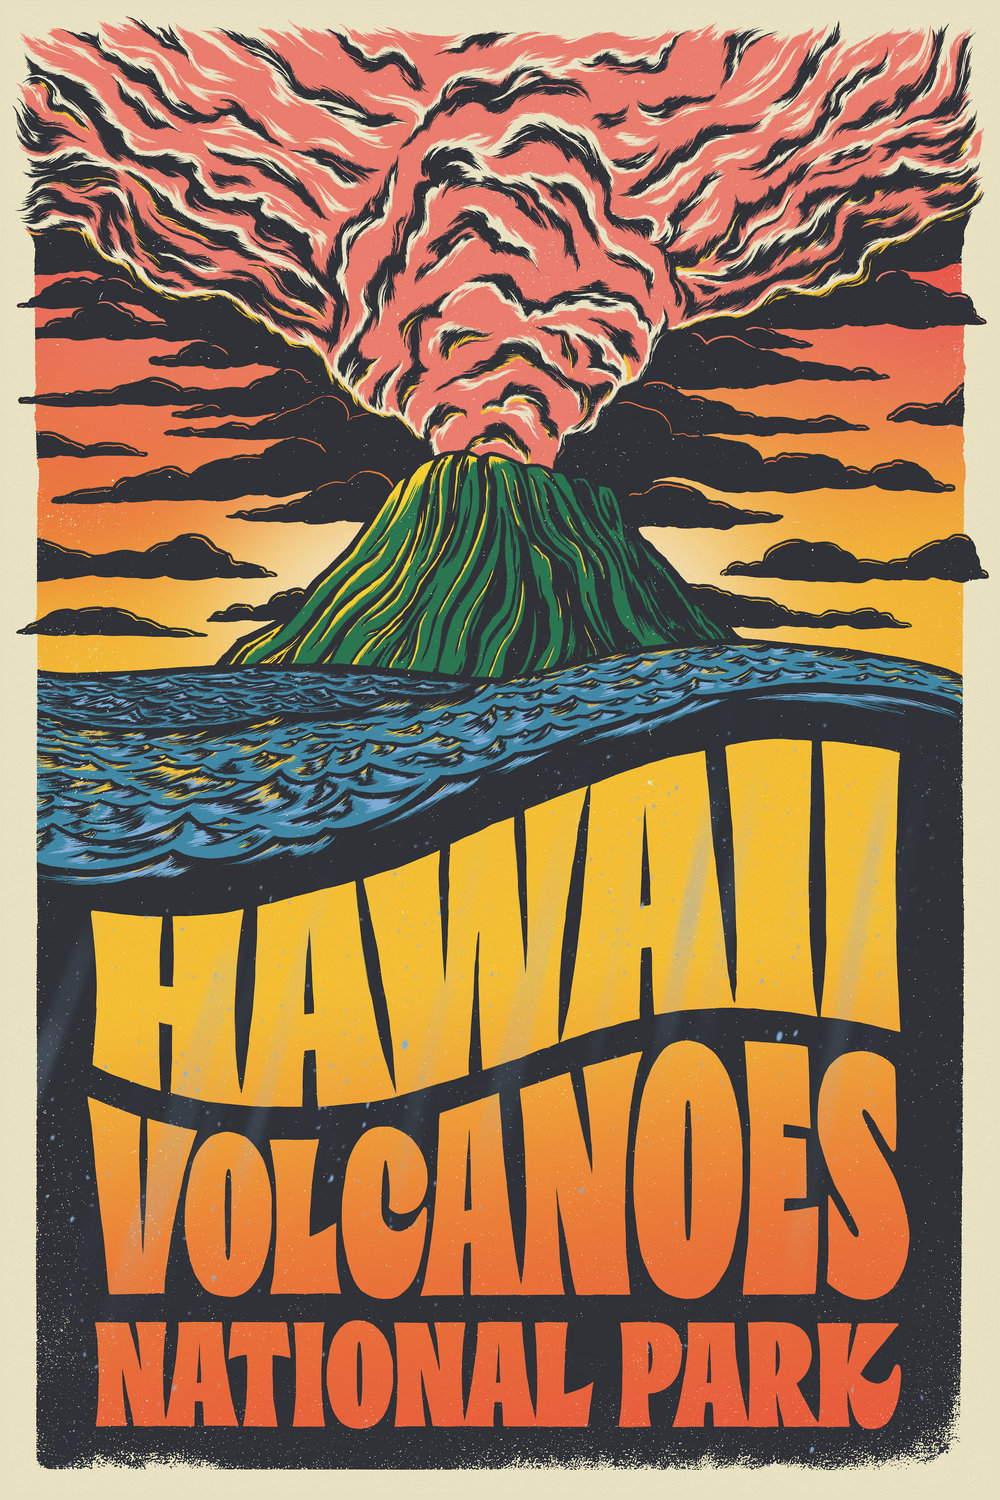 HawaiiVolcanoes_TH.jpg